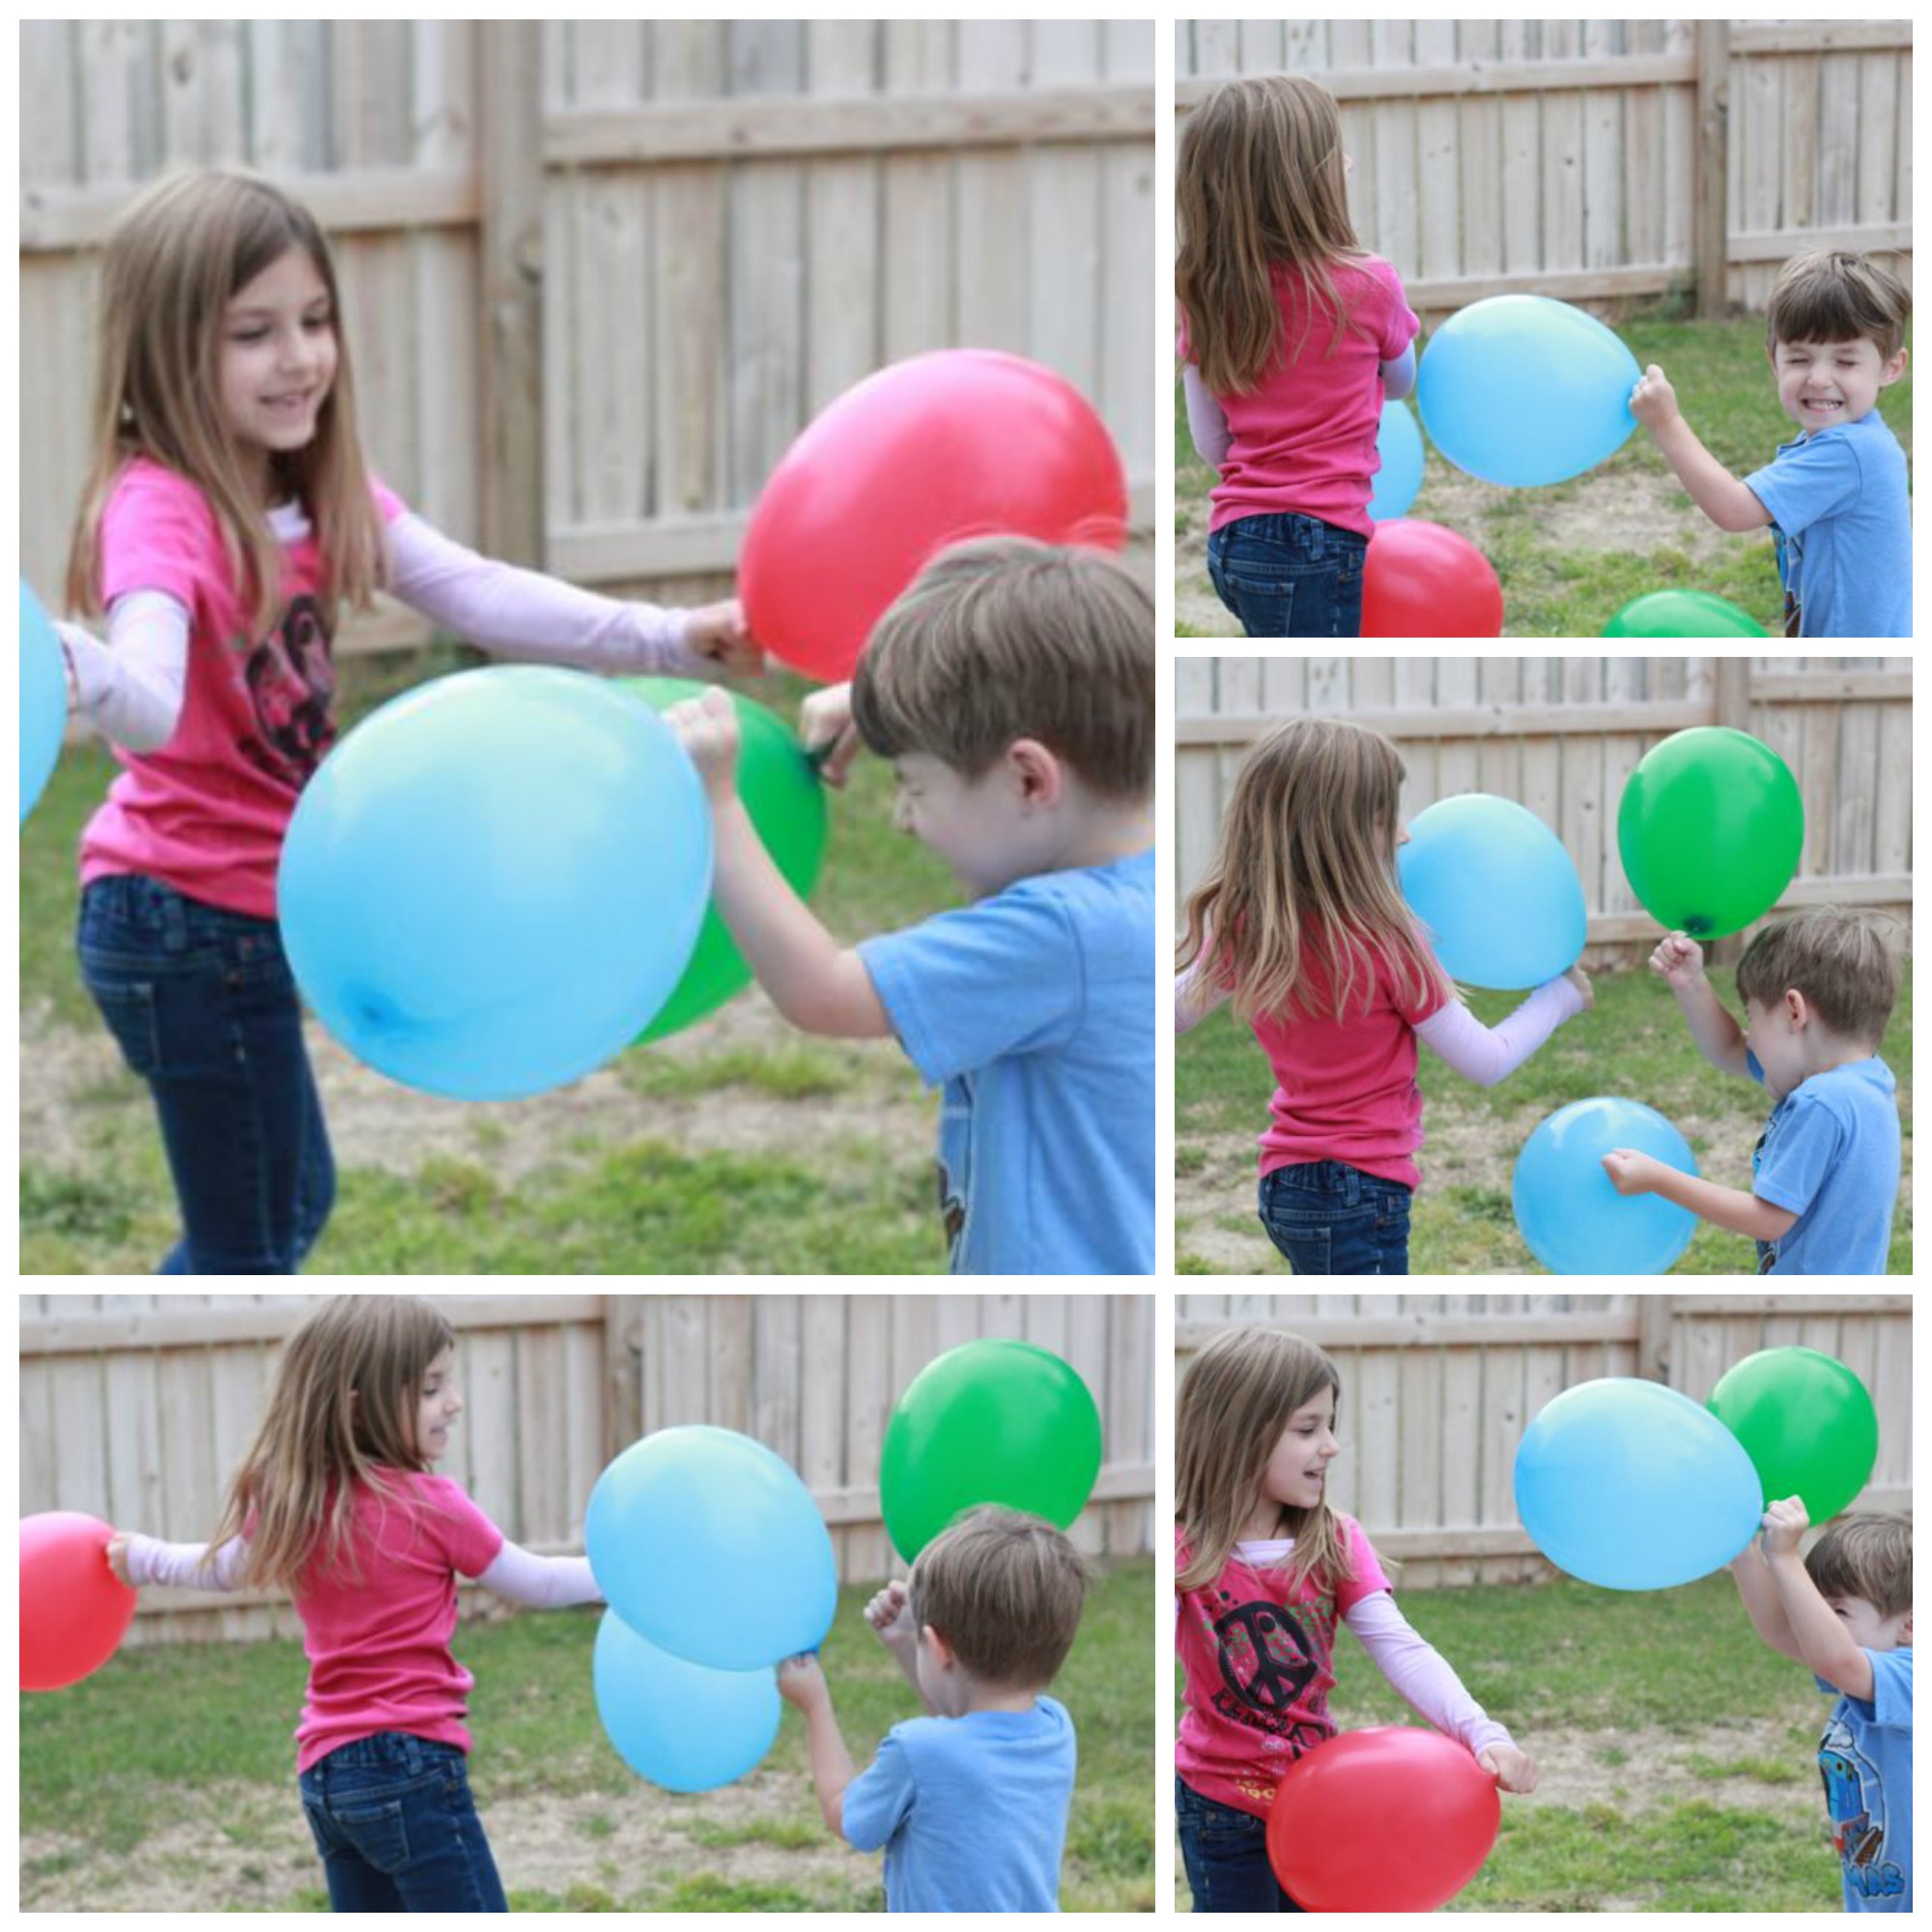 The Great Balloon Fight Of 2013